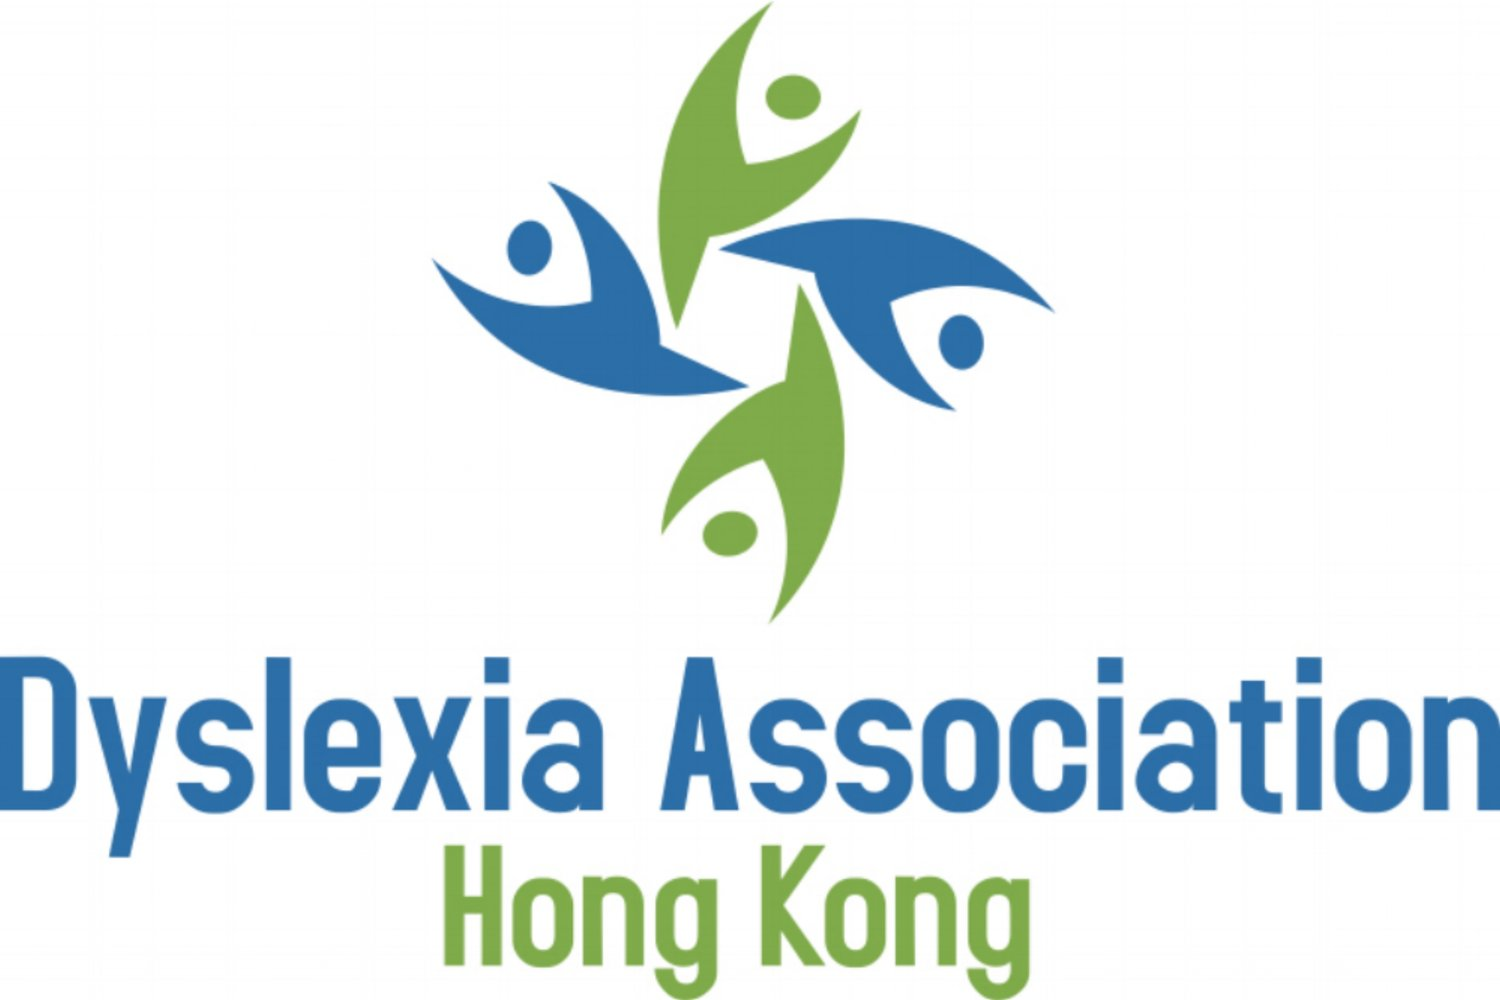 Dyslexia Association Hong Kong